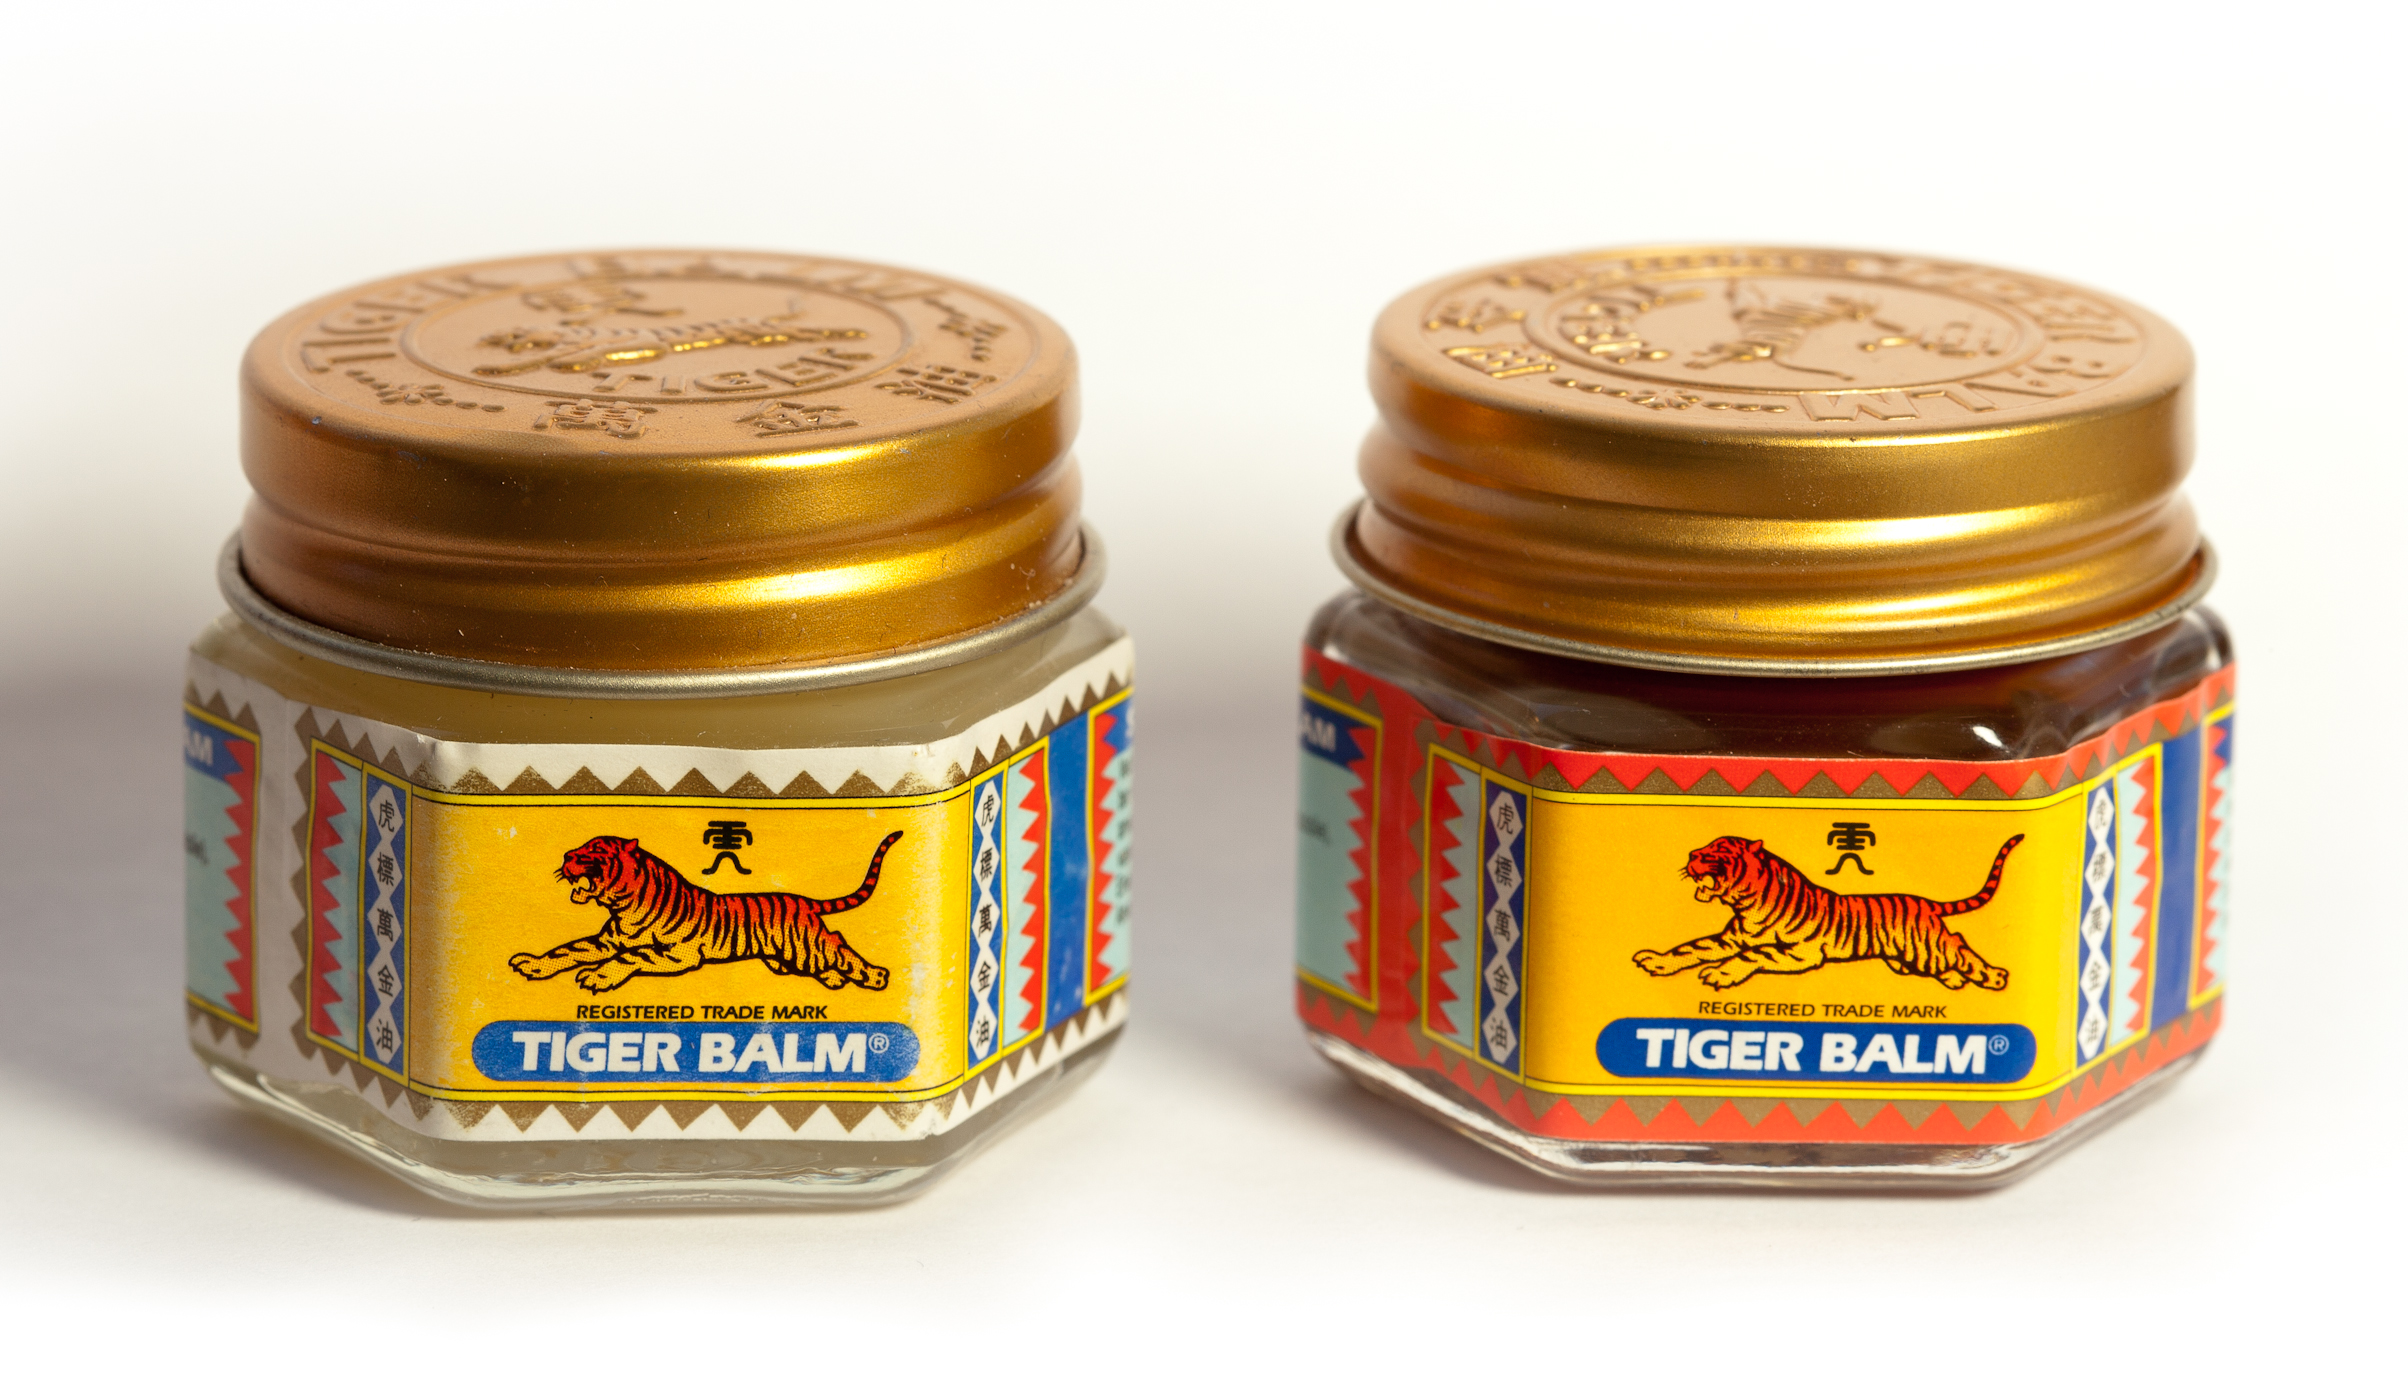 Bad News from Bangkok; A Rule of Travel Becomes a Law, and a New Use for Tiger Balm